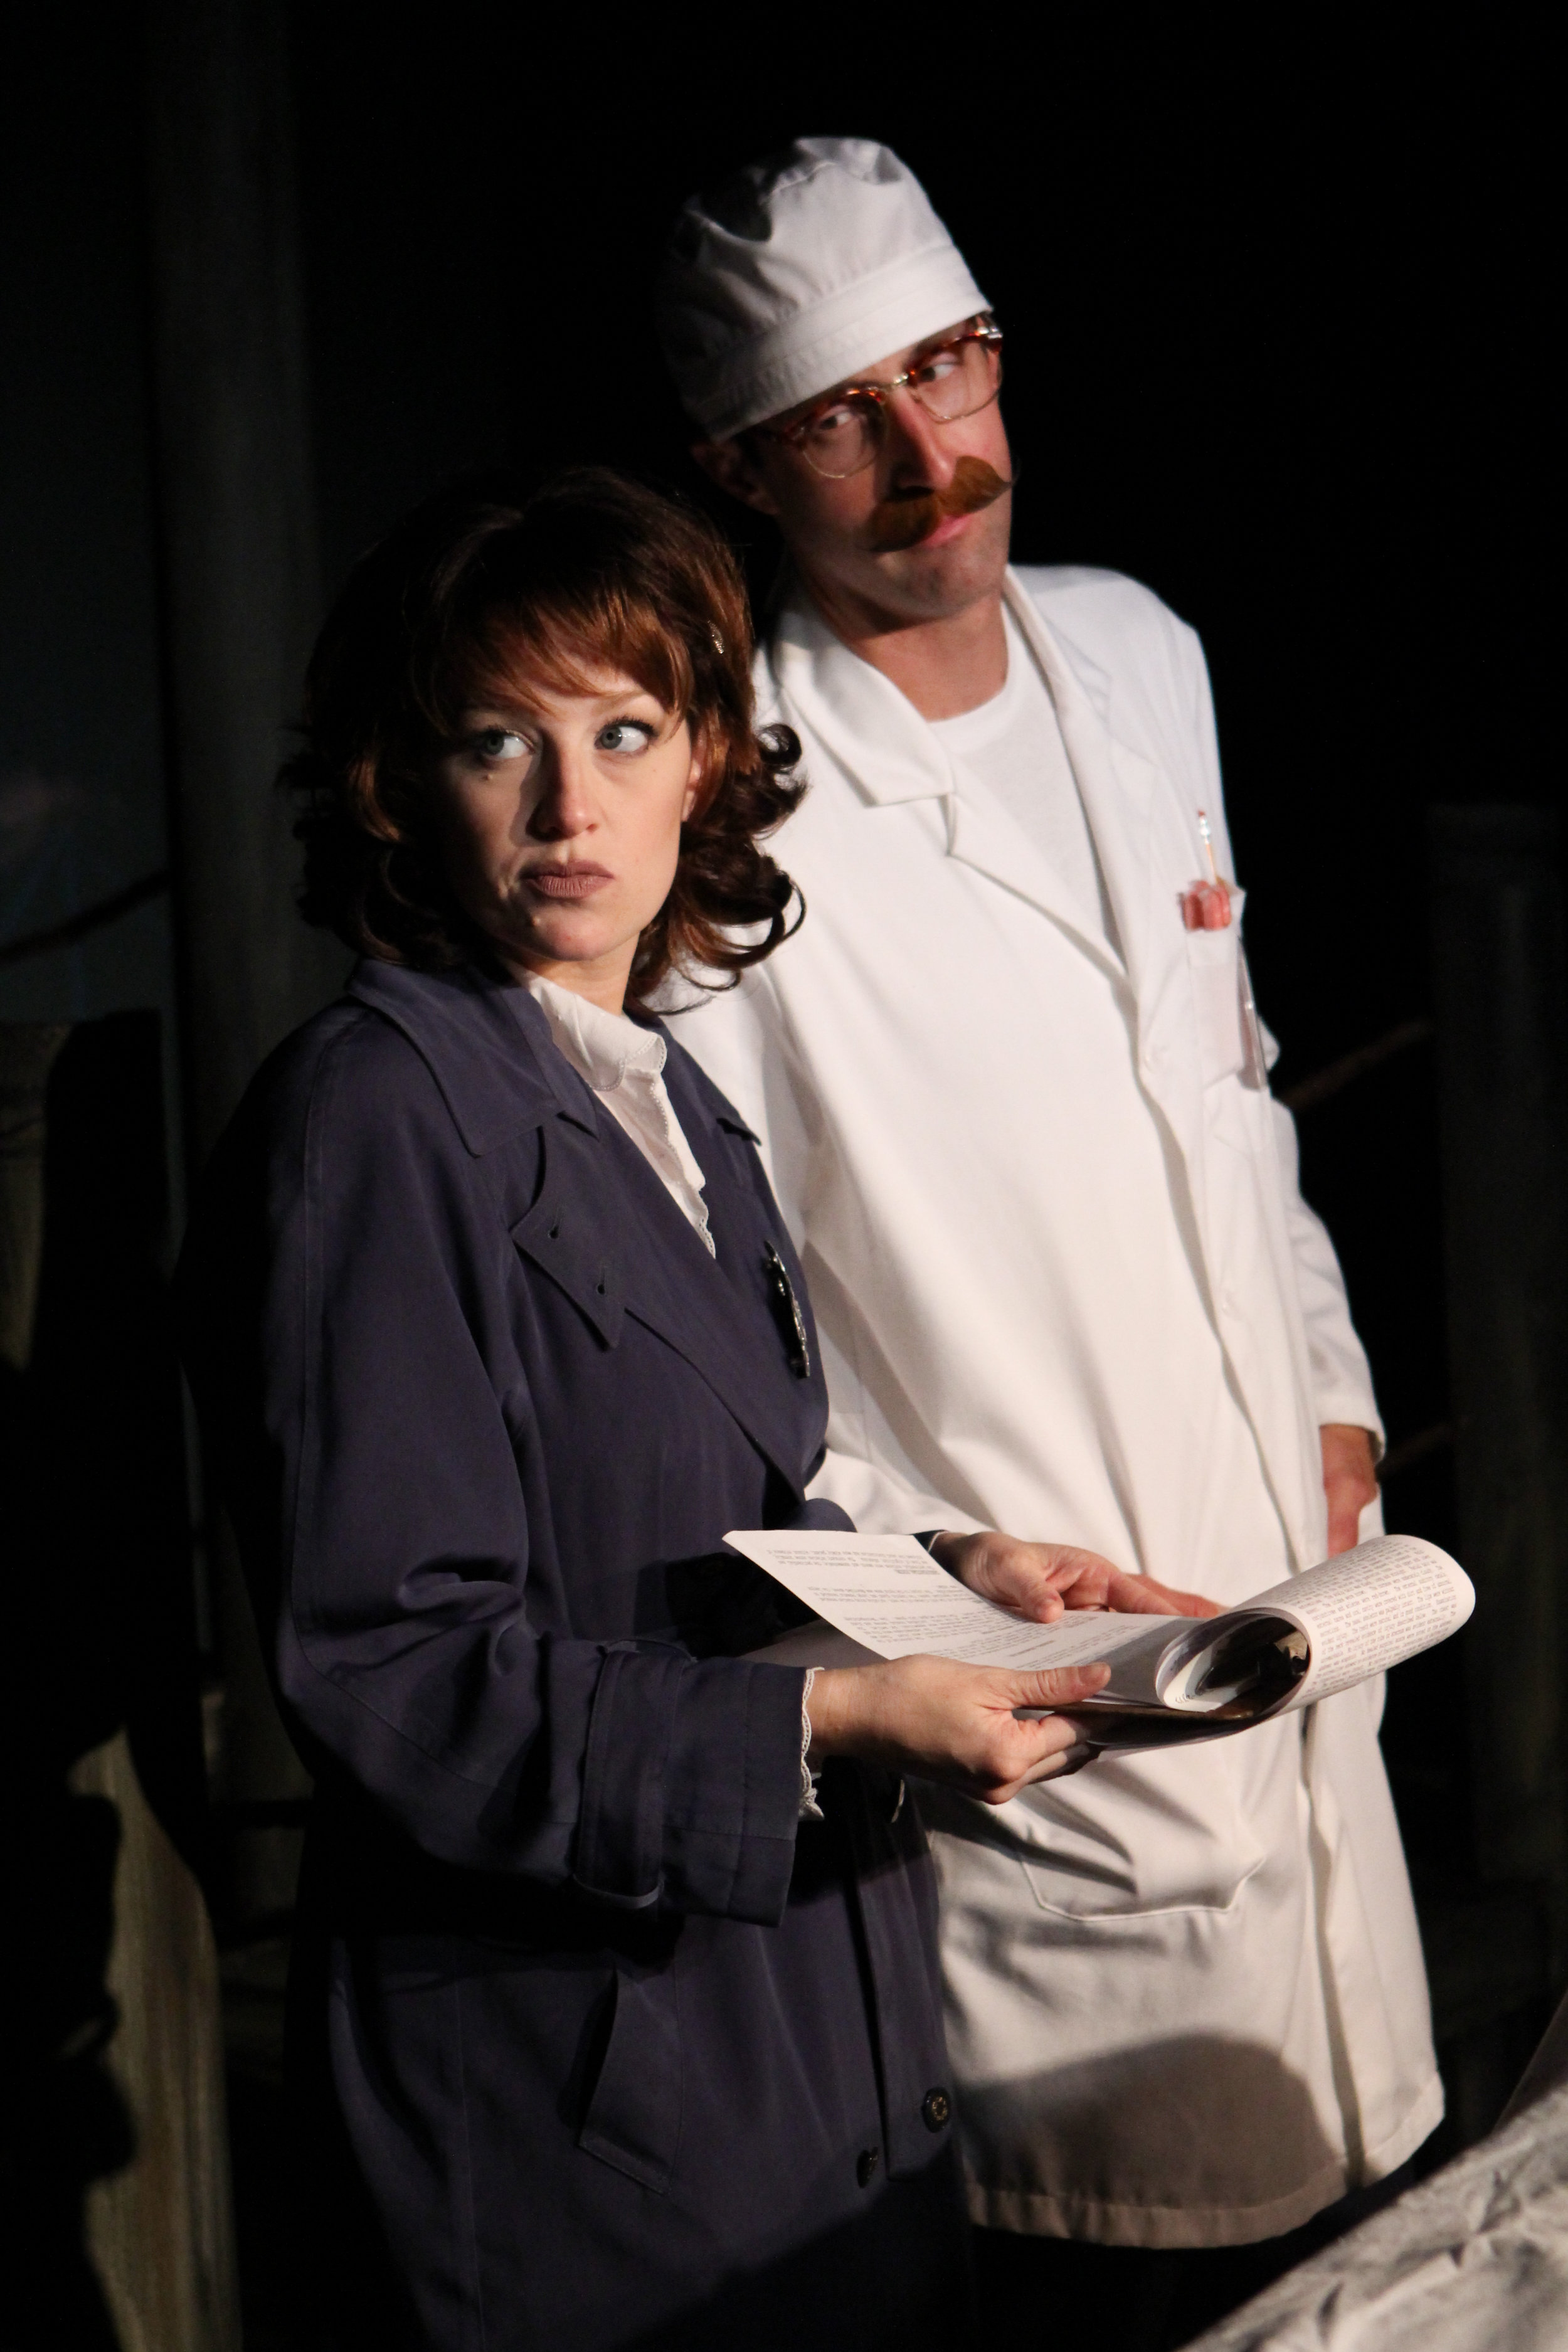 """Detective Maggie (Cayla Anderson) and the coroner (Dustin Nolan) compare notes during an autopsy in a scene from Lake Country Playhouse's """"Red Herring."""""""